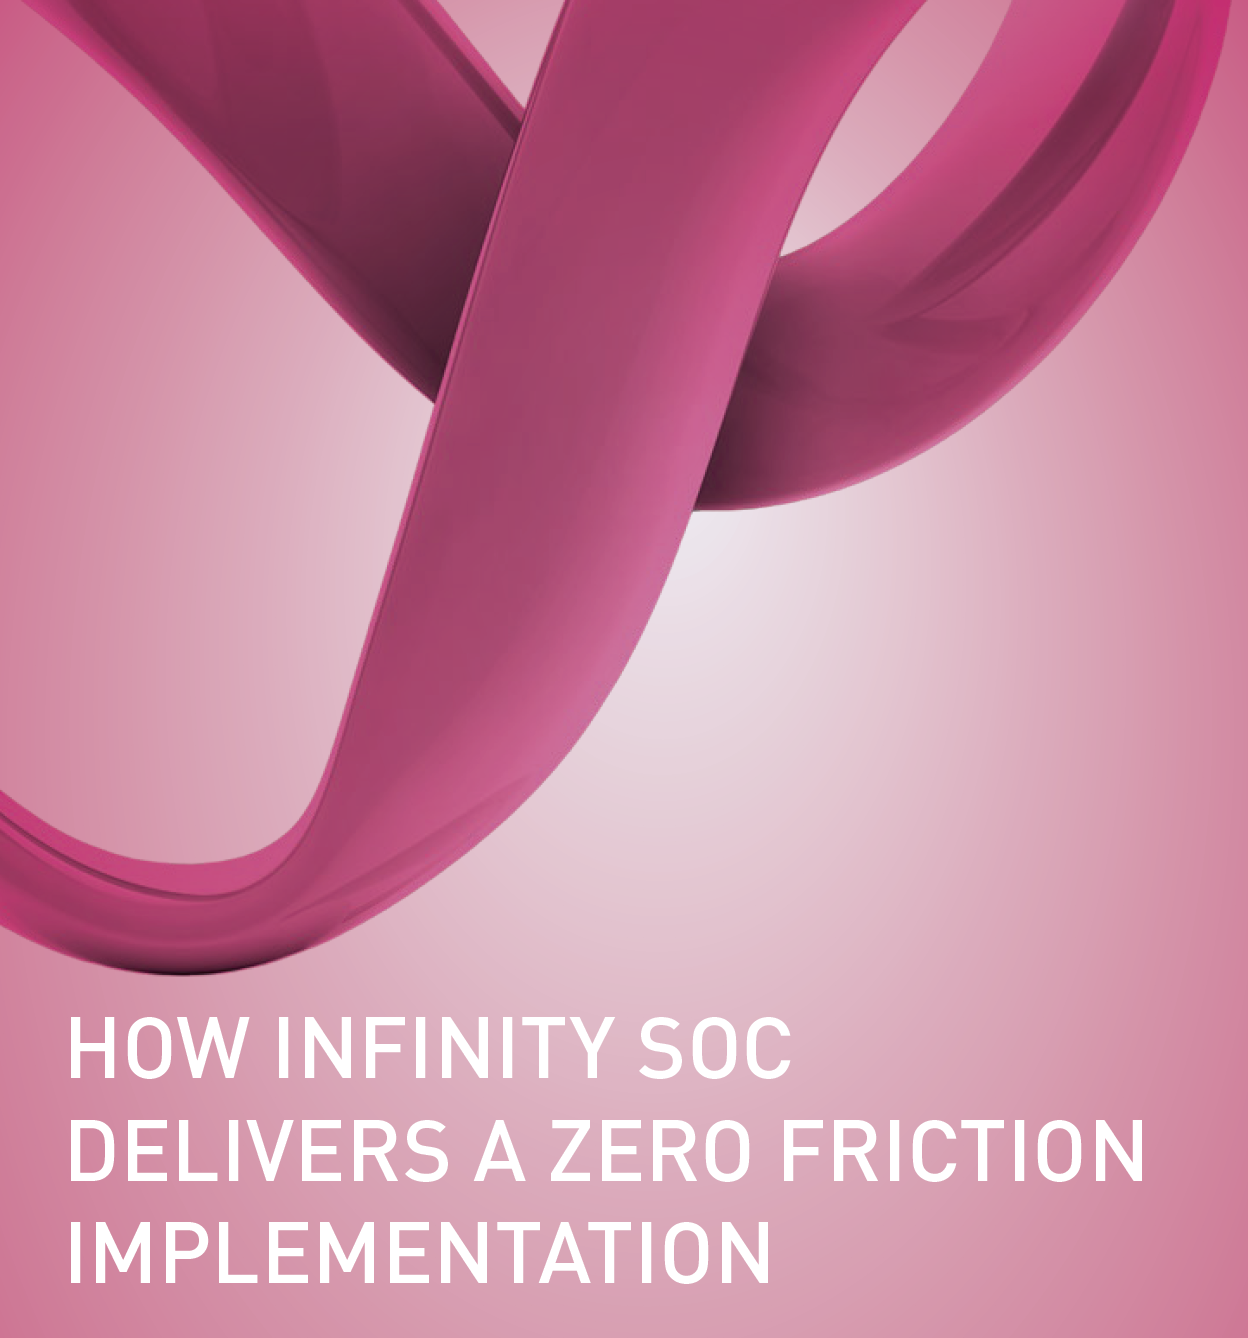 How Infinity SOC Delivers a Zero Friction Implementation